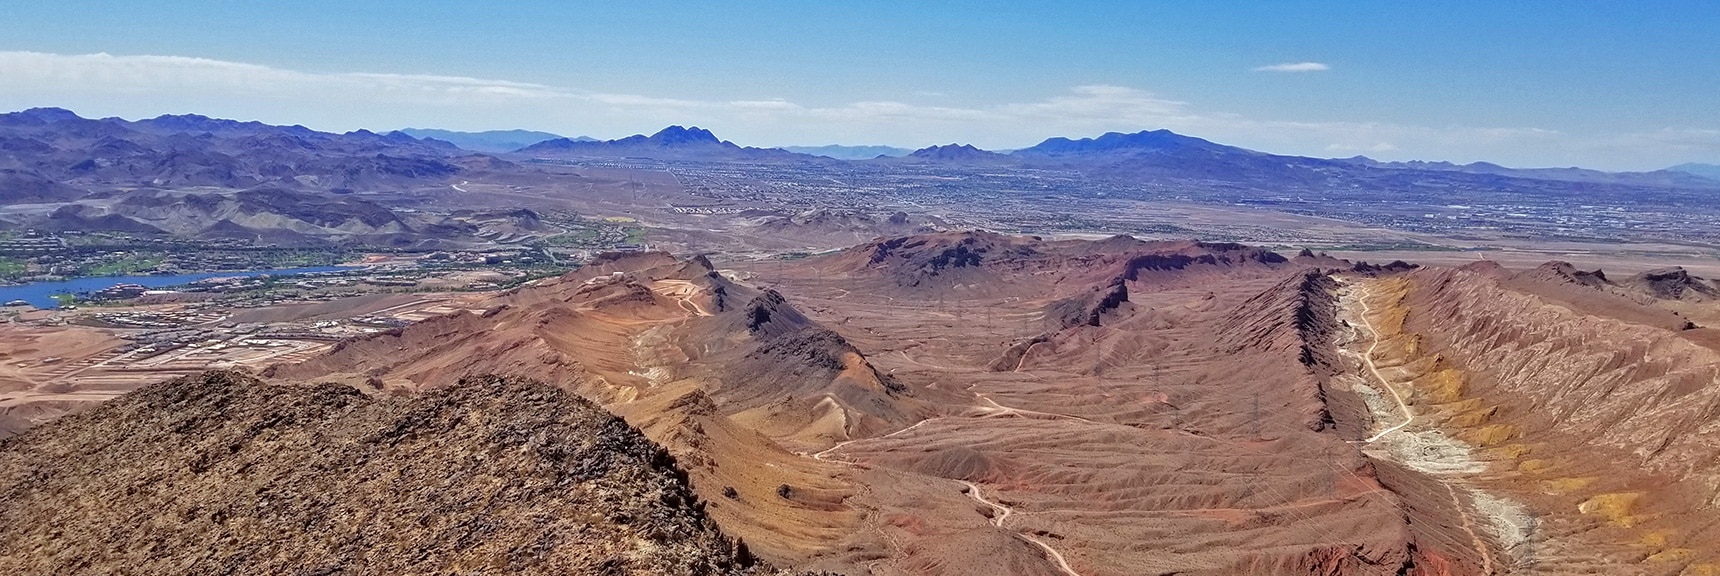 Southern View from the Summit. Full Circle Back to Lake Las Vegas | Lava Butte | Lake Mead National Recreation Area, Nevada